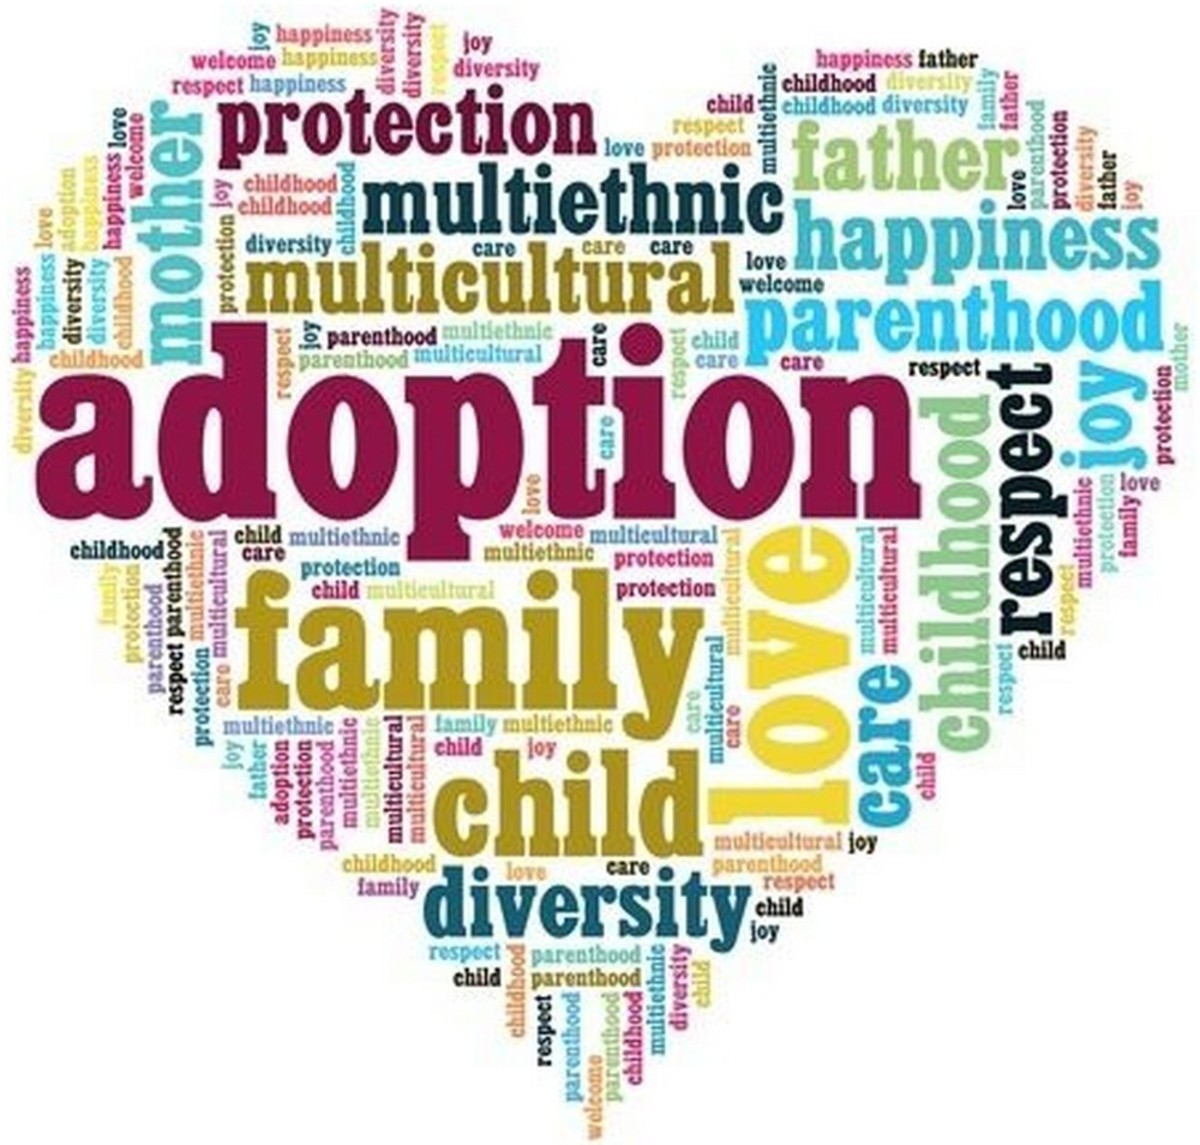 Where Pro-Choice and Pro-Life should meet: Government makes adoption waaaaay to expensive and difficult. Get government out of adoptions and let the private sector handle it!